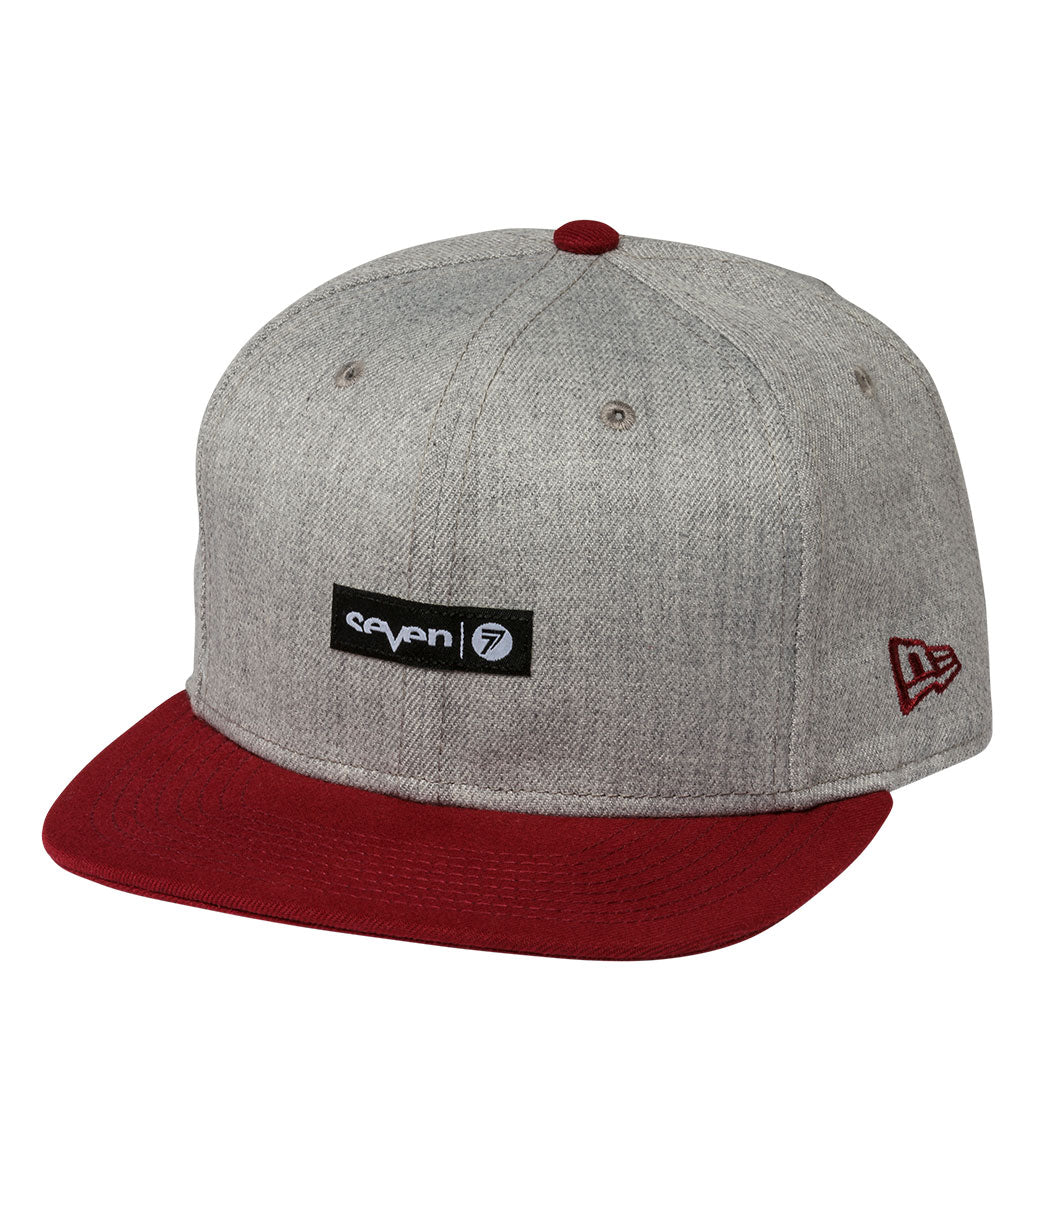 Authentic Hat - Heather Gray